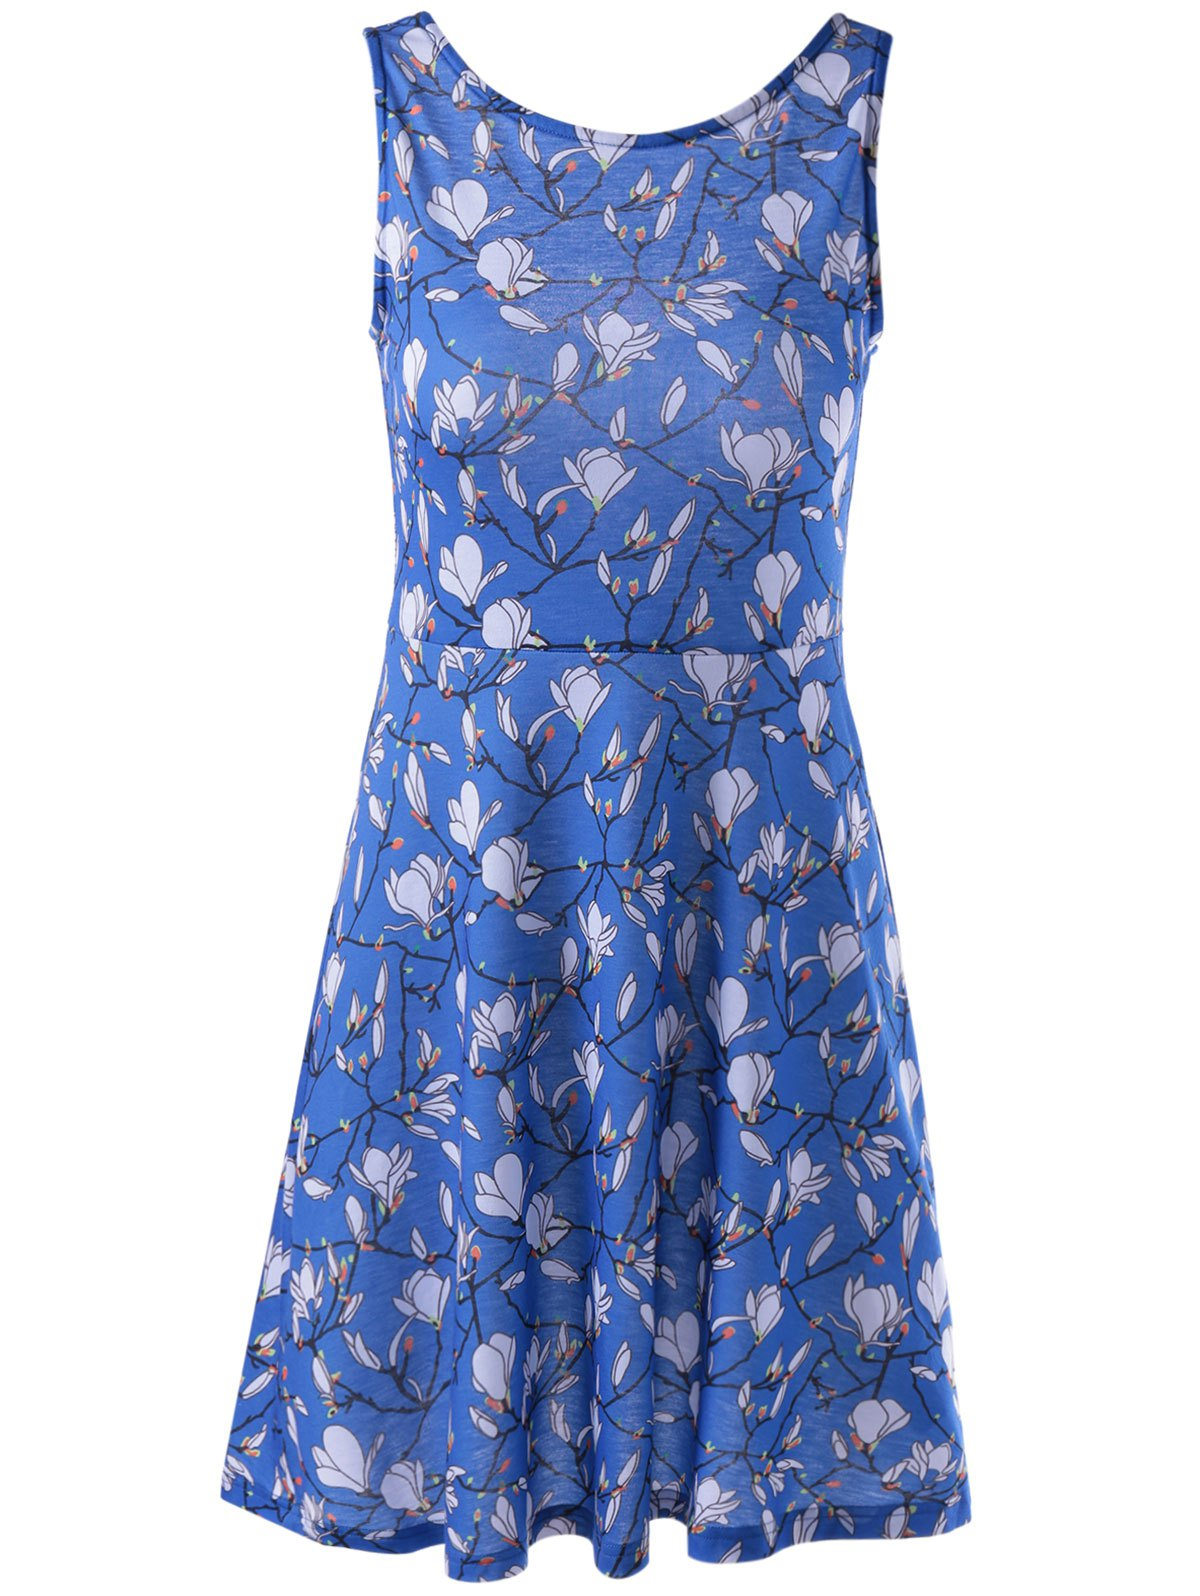 New Fashionable Printing Vest Dress For Women